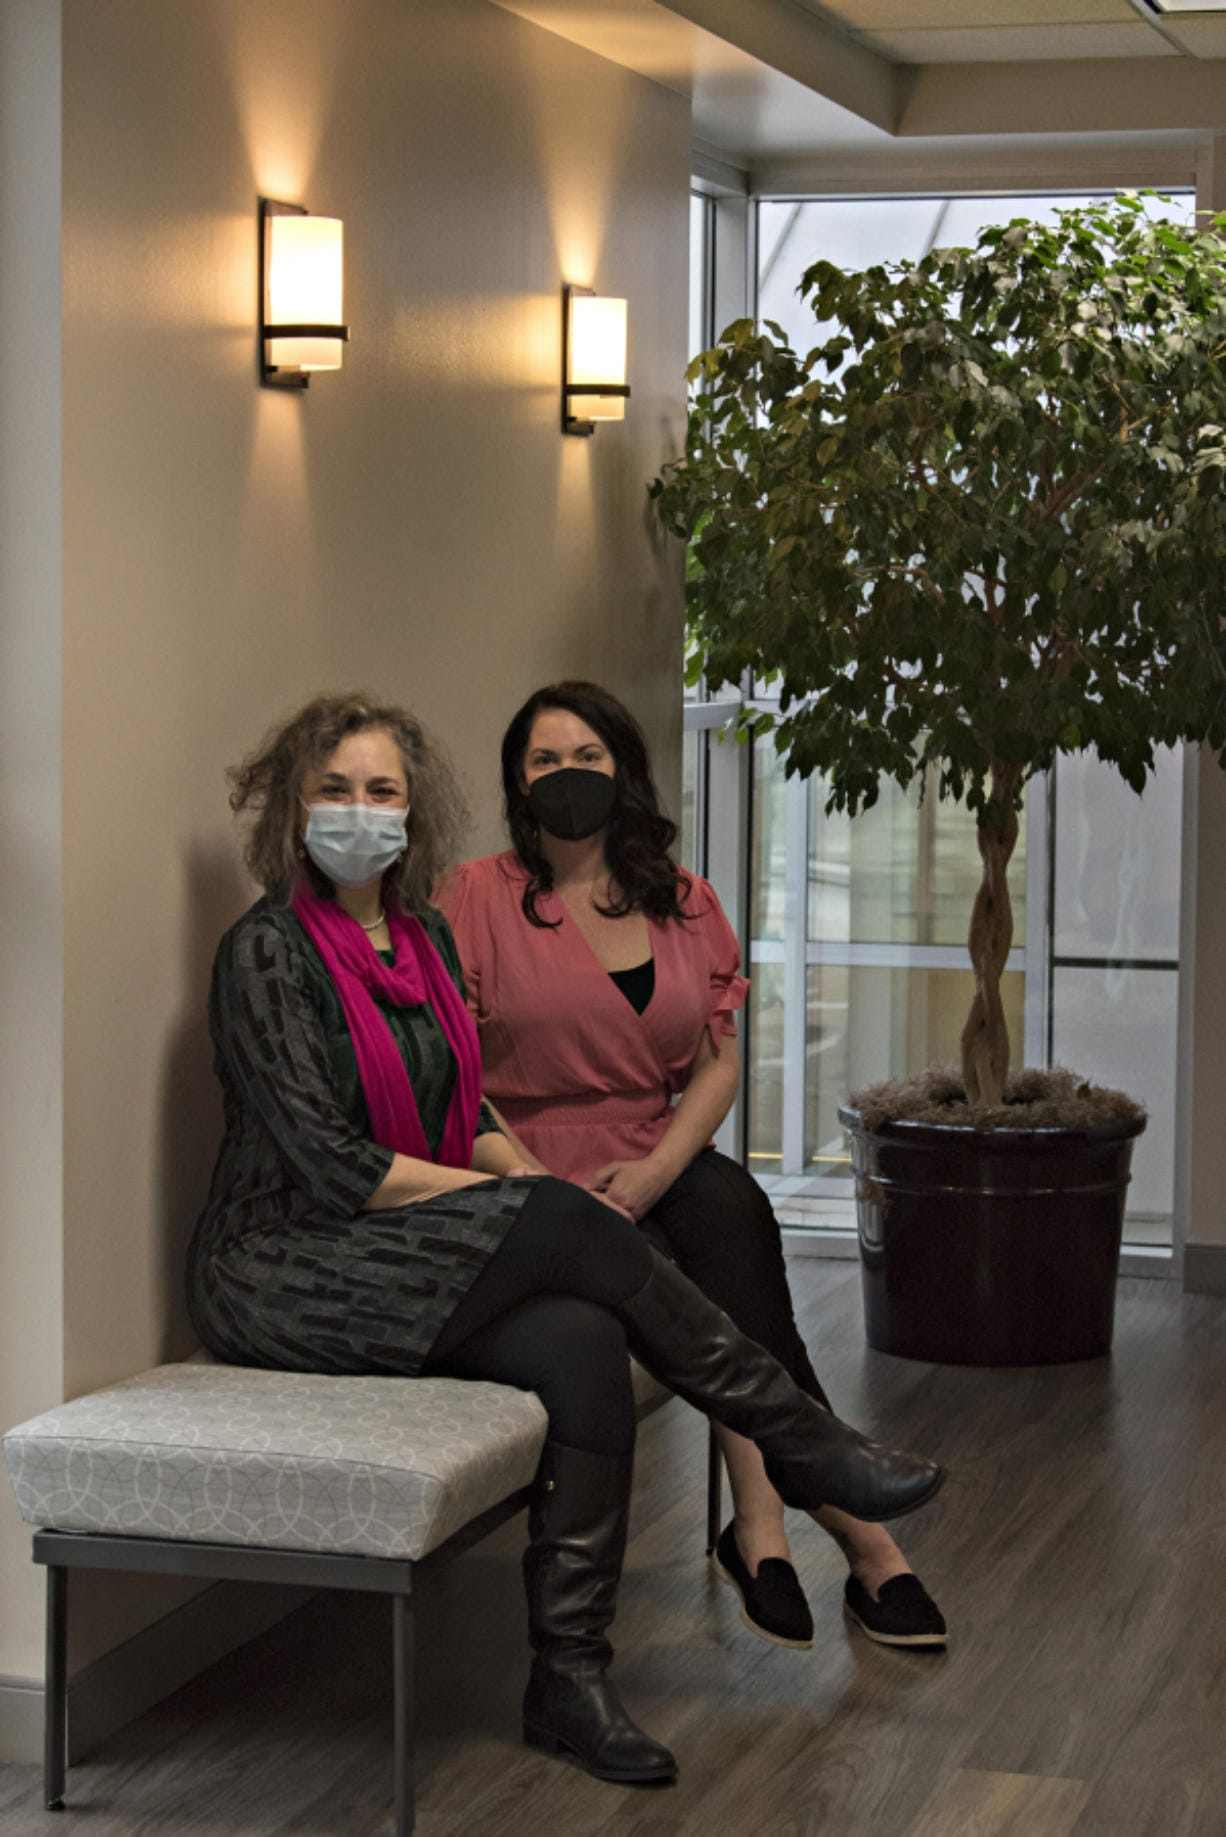 Susan Stearns, left, CEO of the Pink Lemonade Project, pauses for a portrait with Melissa Mohr, practice manager at Dr. Allen Gabriel's office in Vancouver. Stearns and Mohr have worked together on Holiday Glow, which will provide financial assistance to breast cancer patients and those in recovery this holiday season.